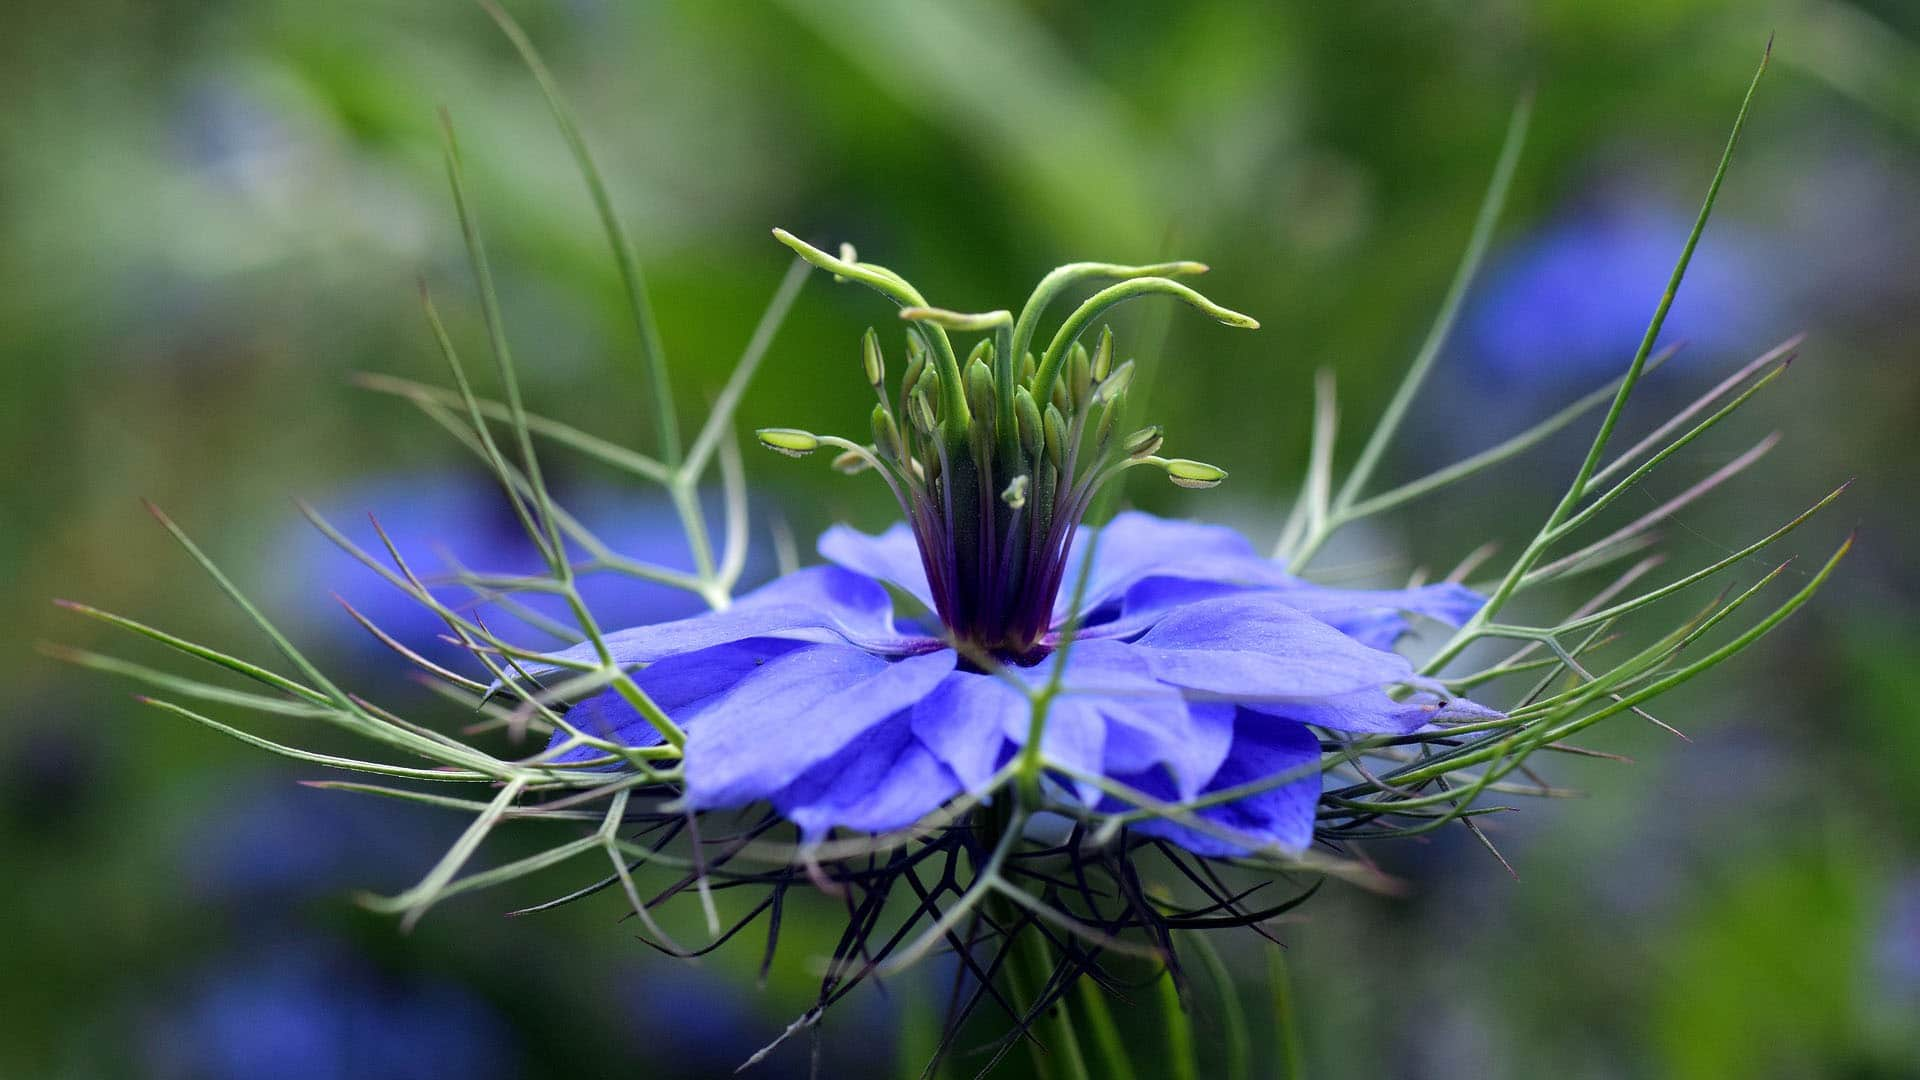 Blackseed (Nigella Sativa)